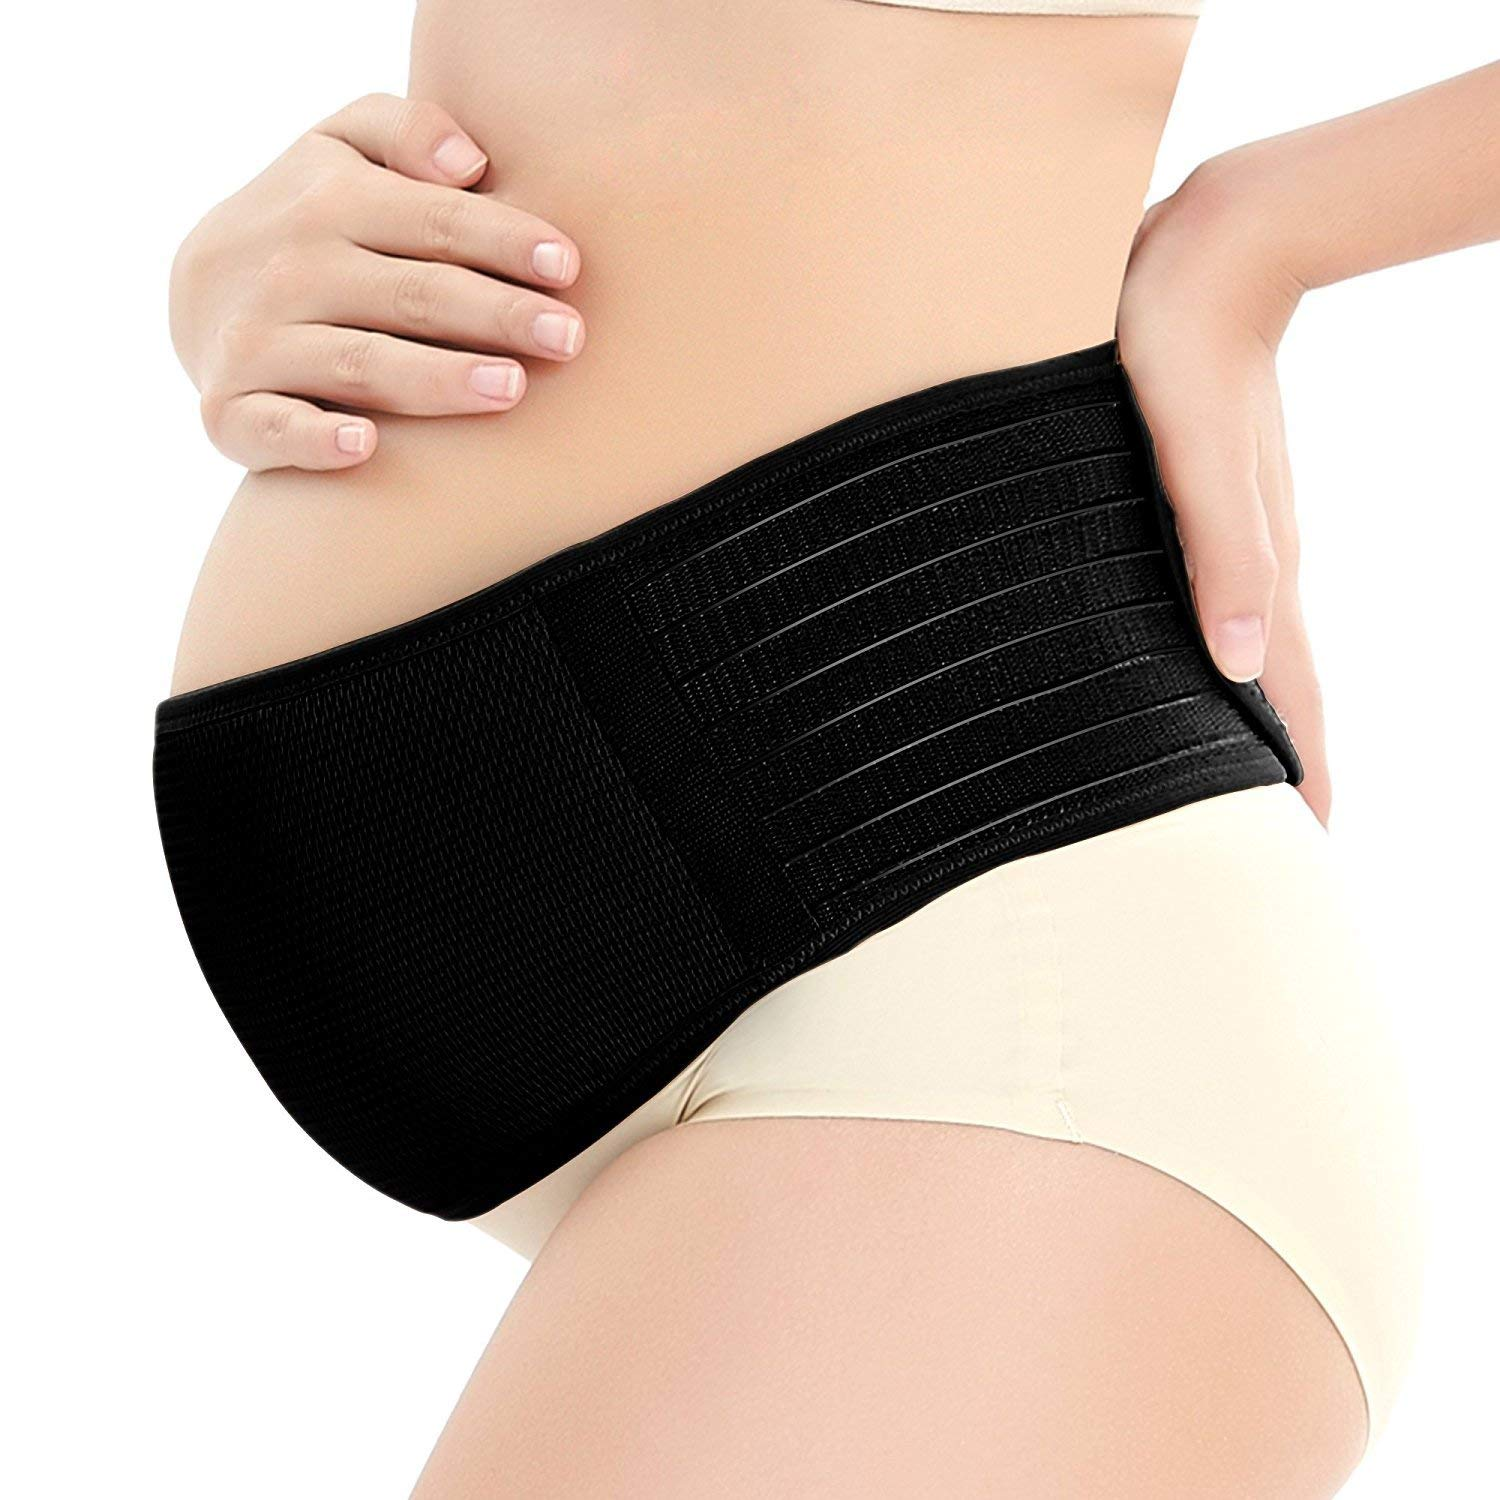 04b7cb3acda Get Quotations ·  Upgraded  BUENAVO Maternity Support Belt Lower Elastic  Back and Pelvic Support Belt for Pregnant